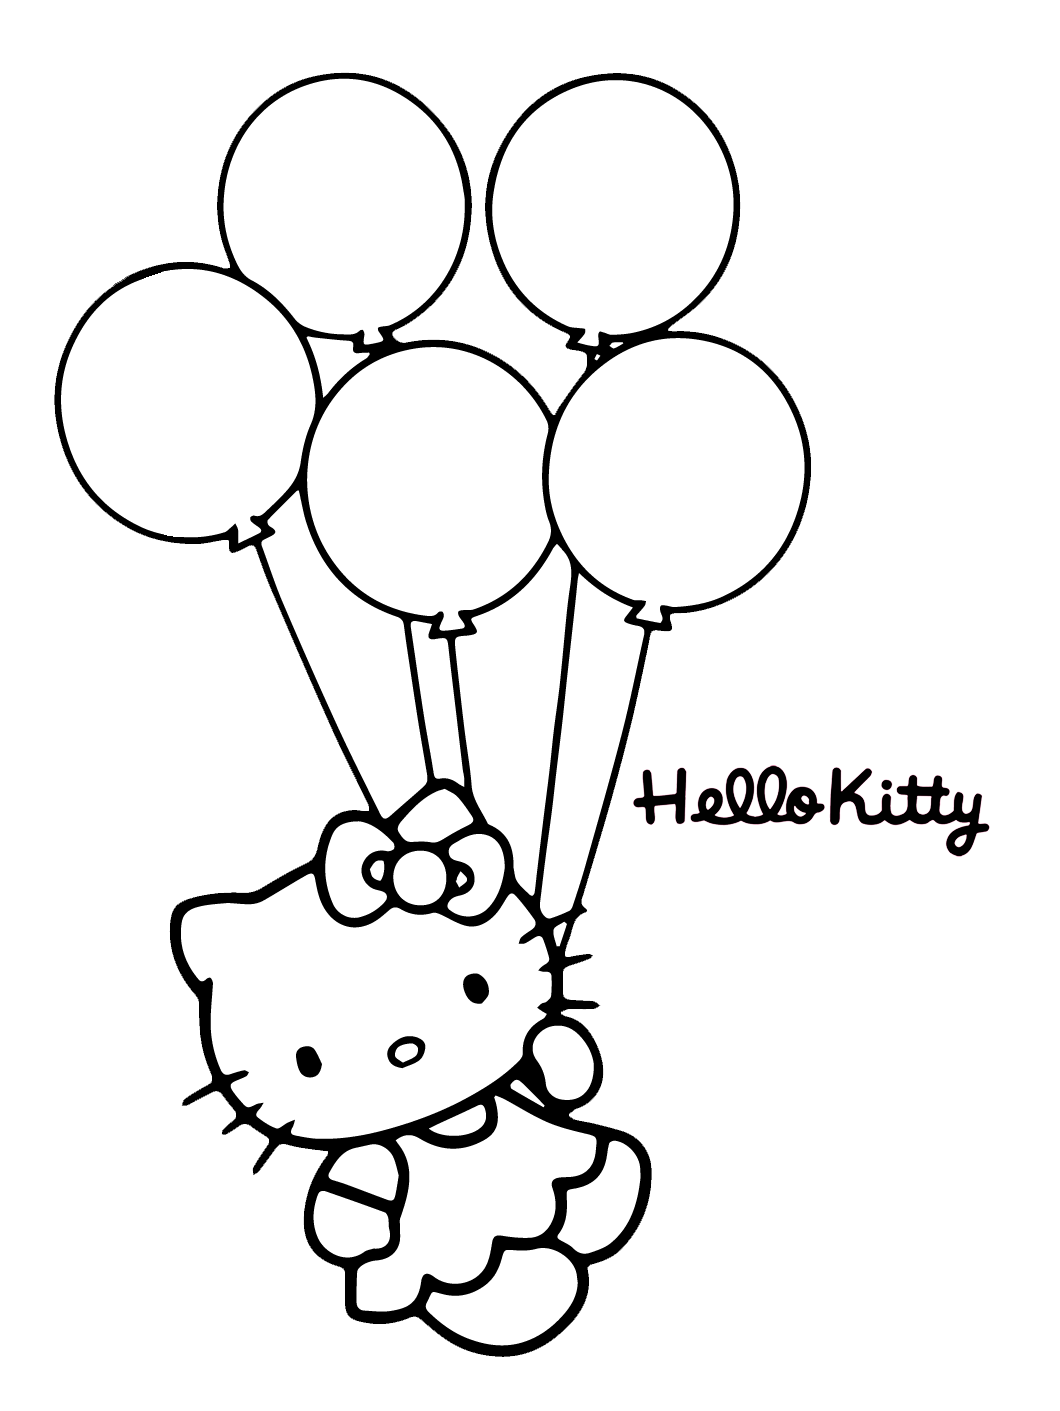 Hey Girls Say Hello To The World Famous Hello Kitty As She Makes Her Appearance Adorable Hello Ki In 2020 Hello Kitty Tattoos Hello Kitty Art Hello Kitty Printables